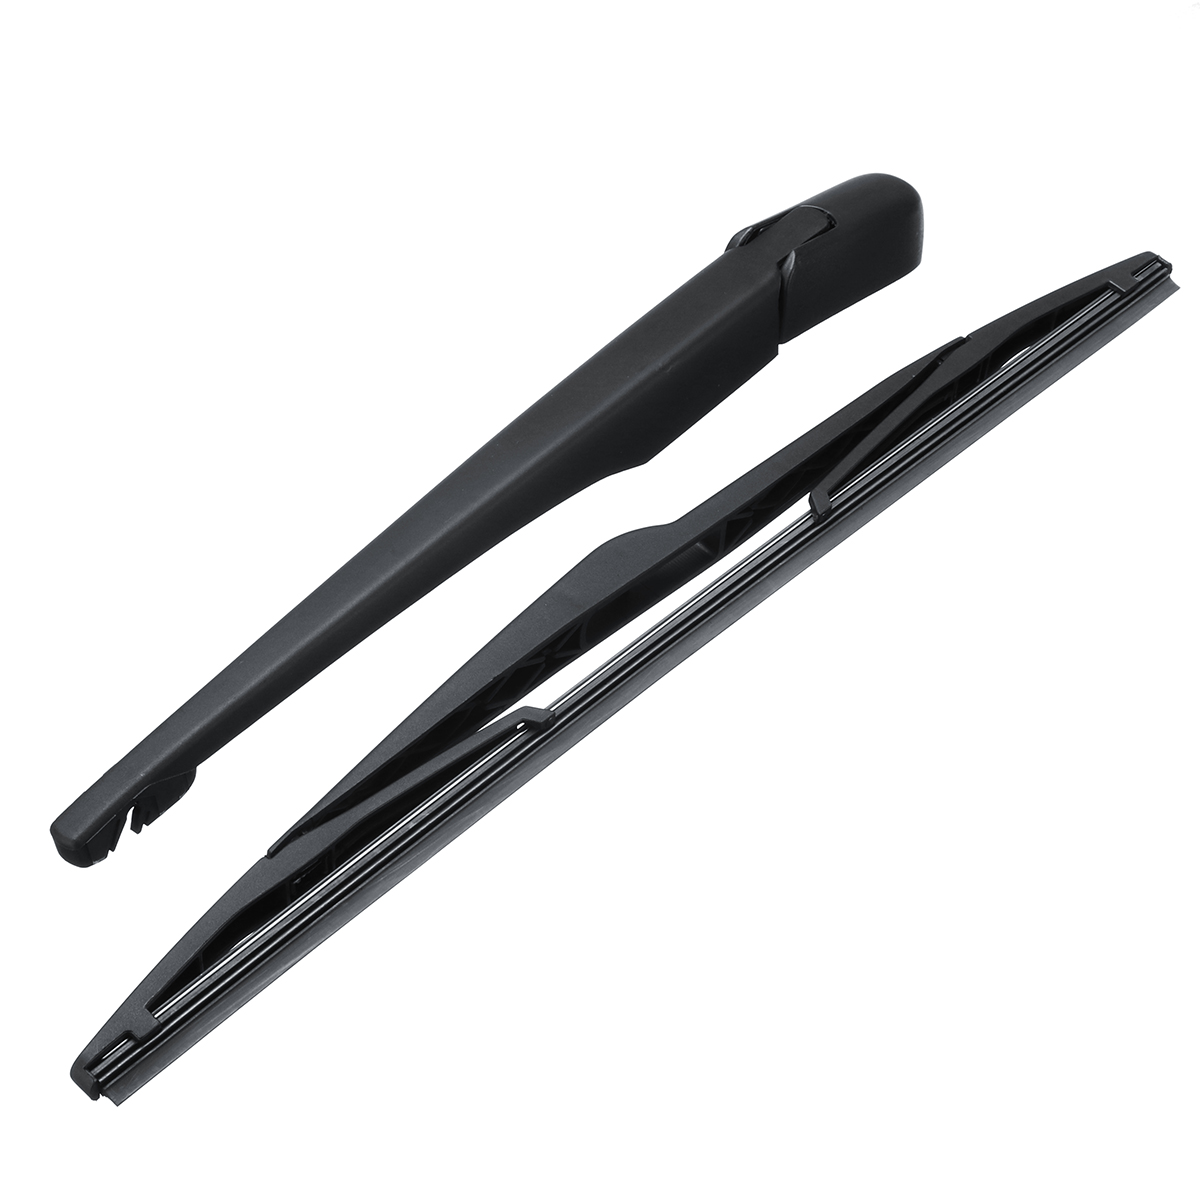 3 x Blades Front and Rear Blades X3 SUV Nov 2003 to Dec 2011 Windscreen Wiper Blade Set